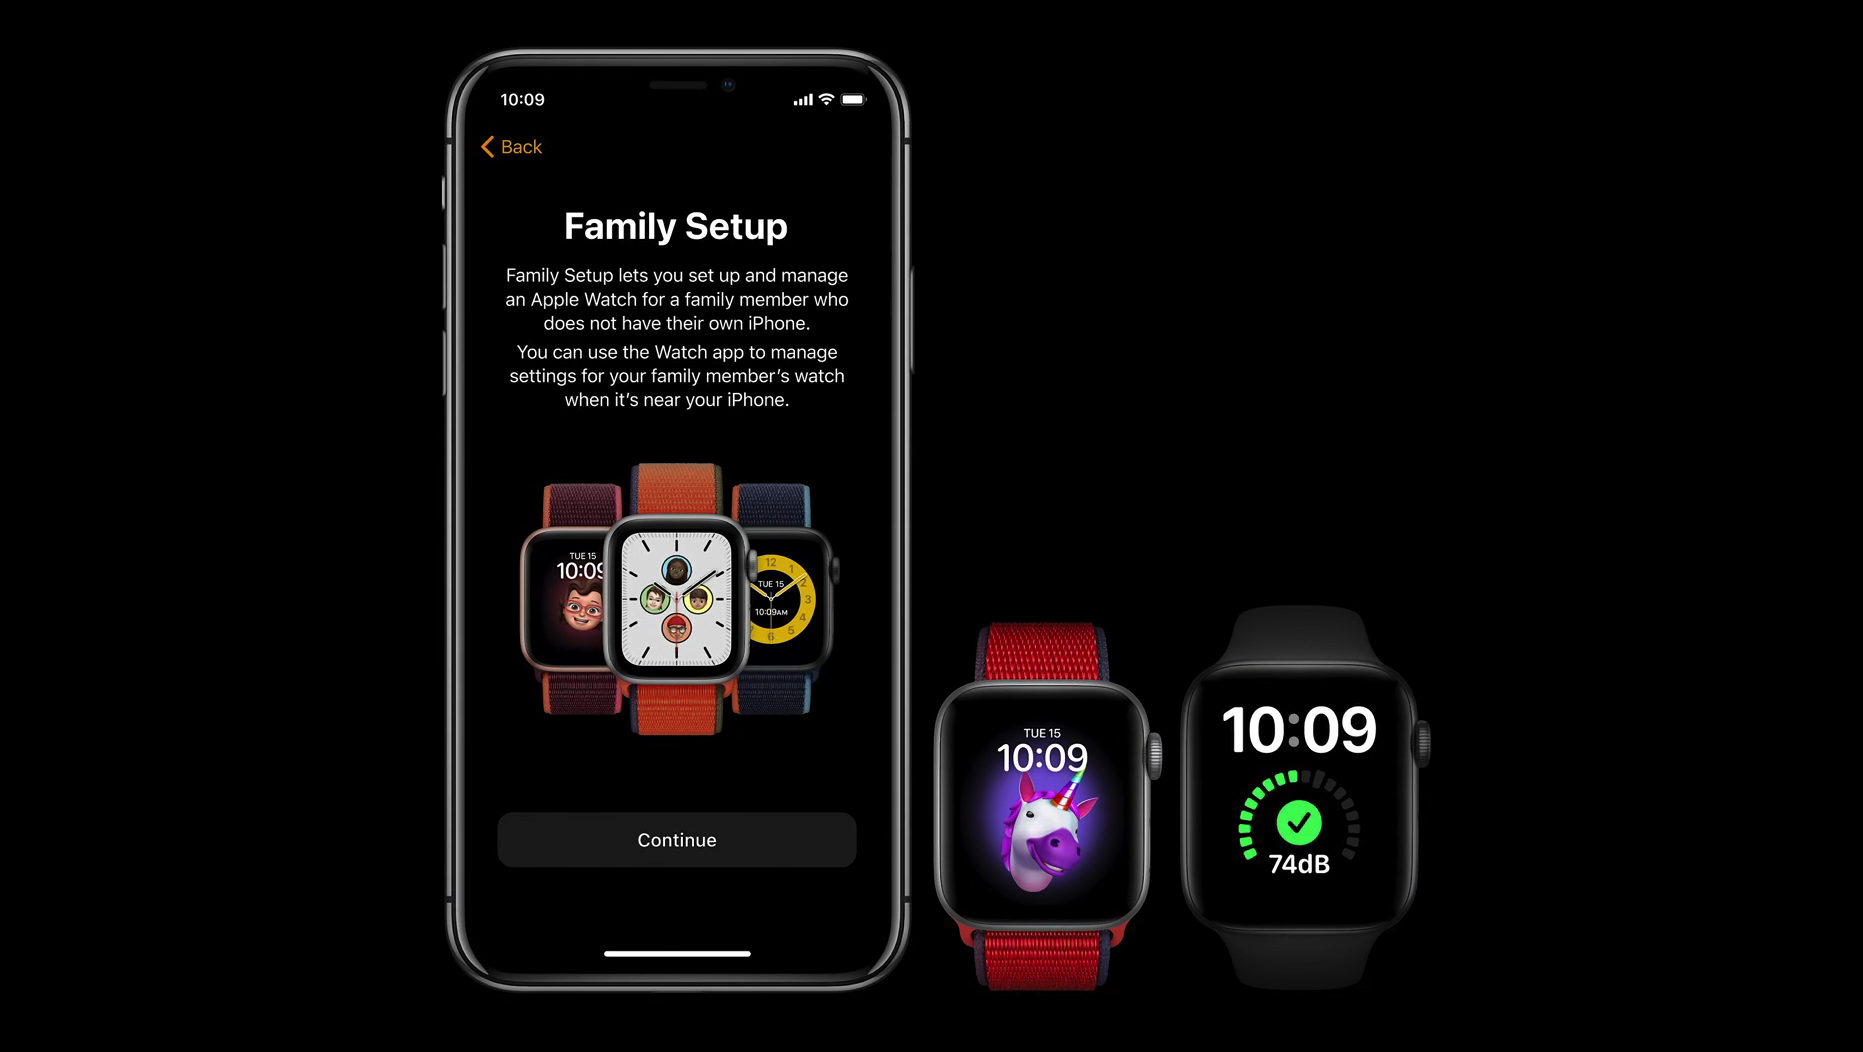 Family Setup for Apple Watch makes the SE ideal for children and the elderly.